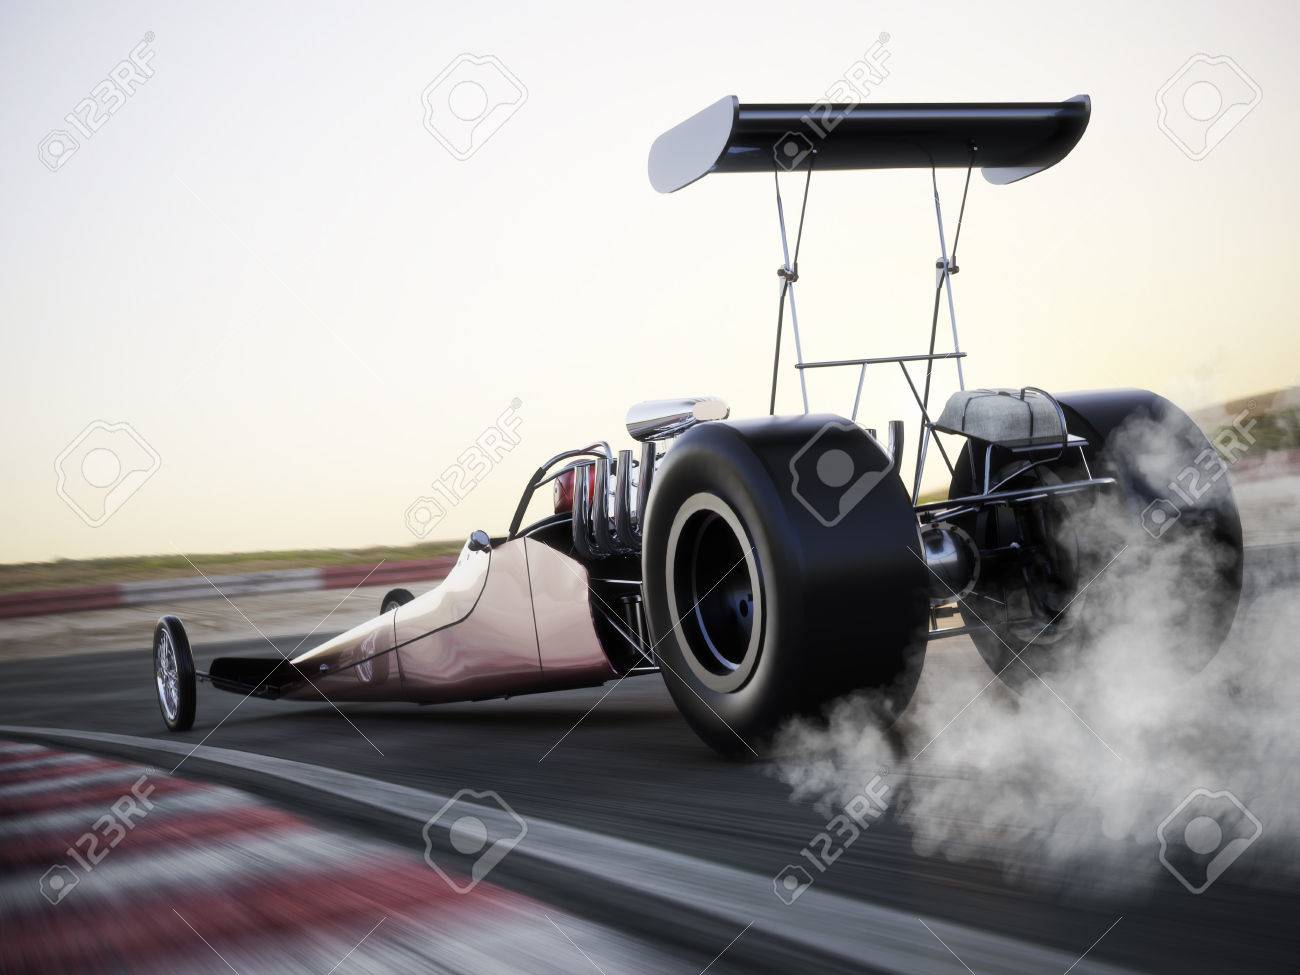 Dragster racing down the track with burnout. Photo realistic 3d model scene with room for text or copy space. Standard-Bild - 43044678